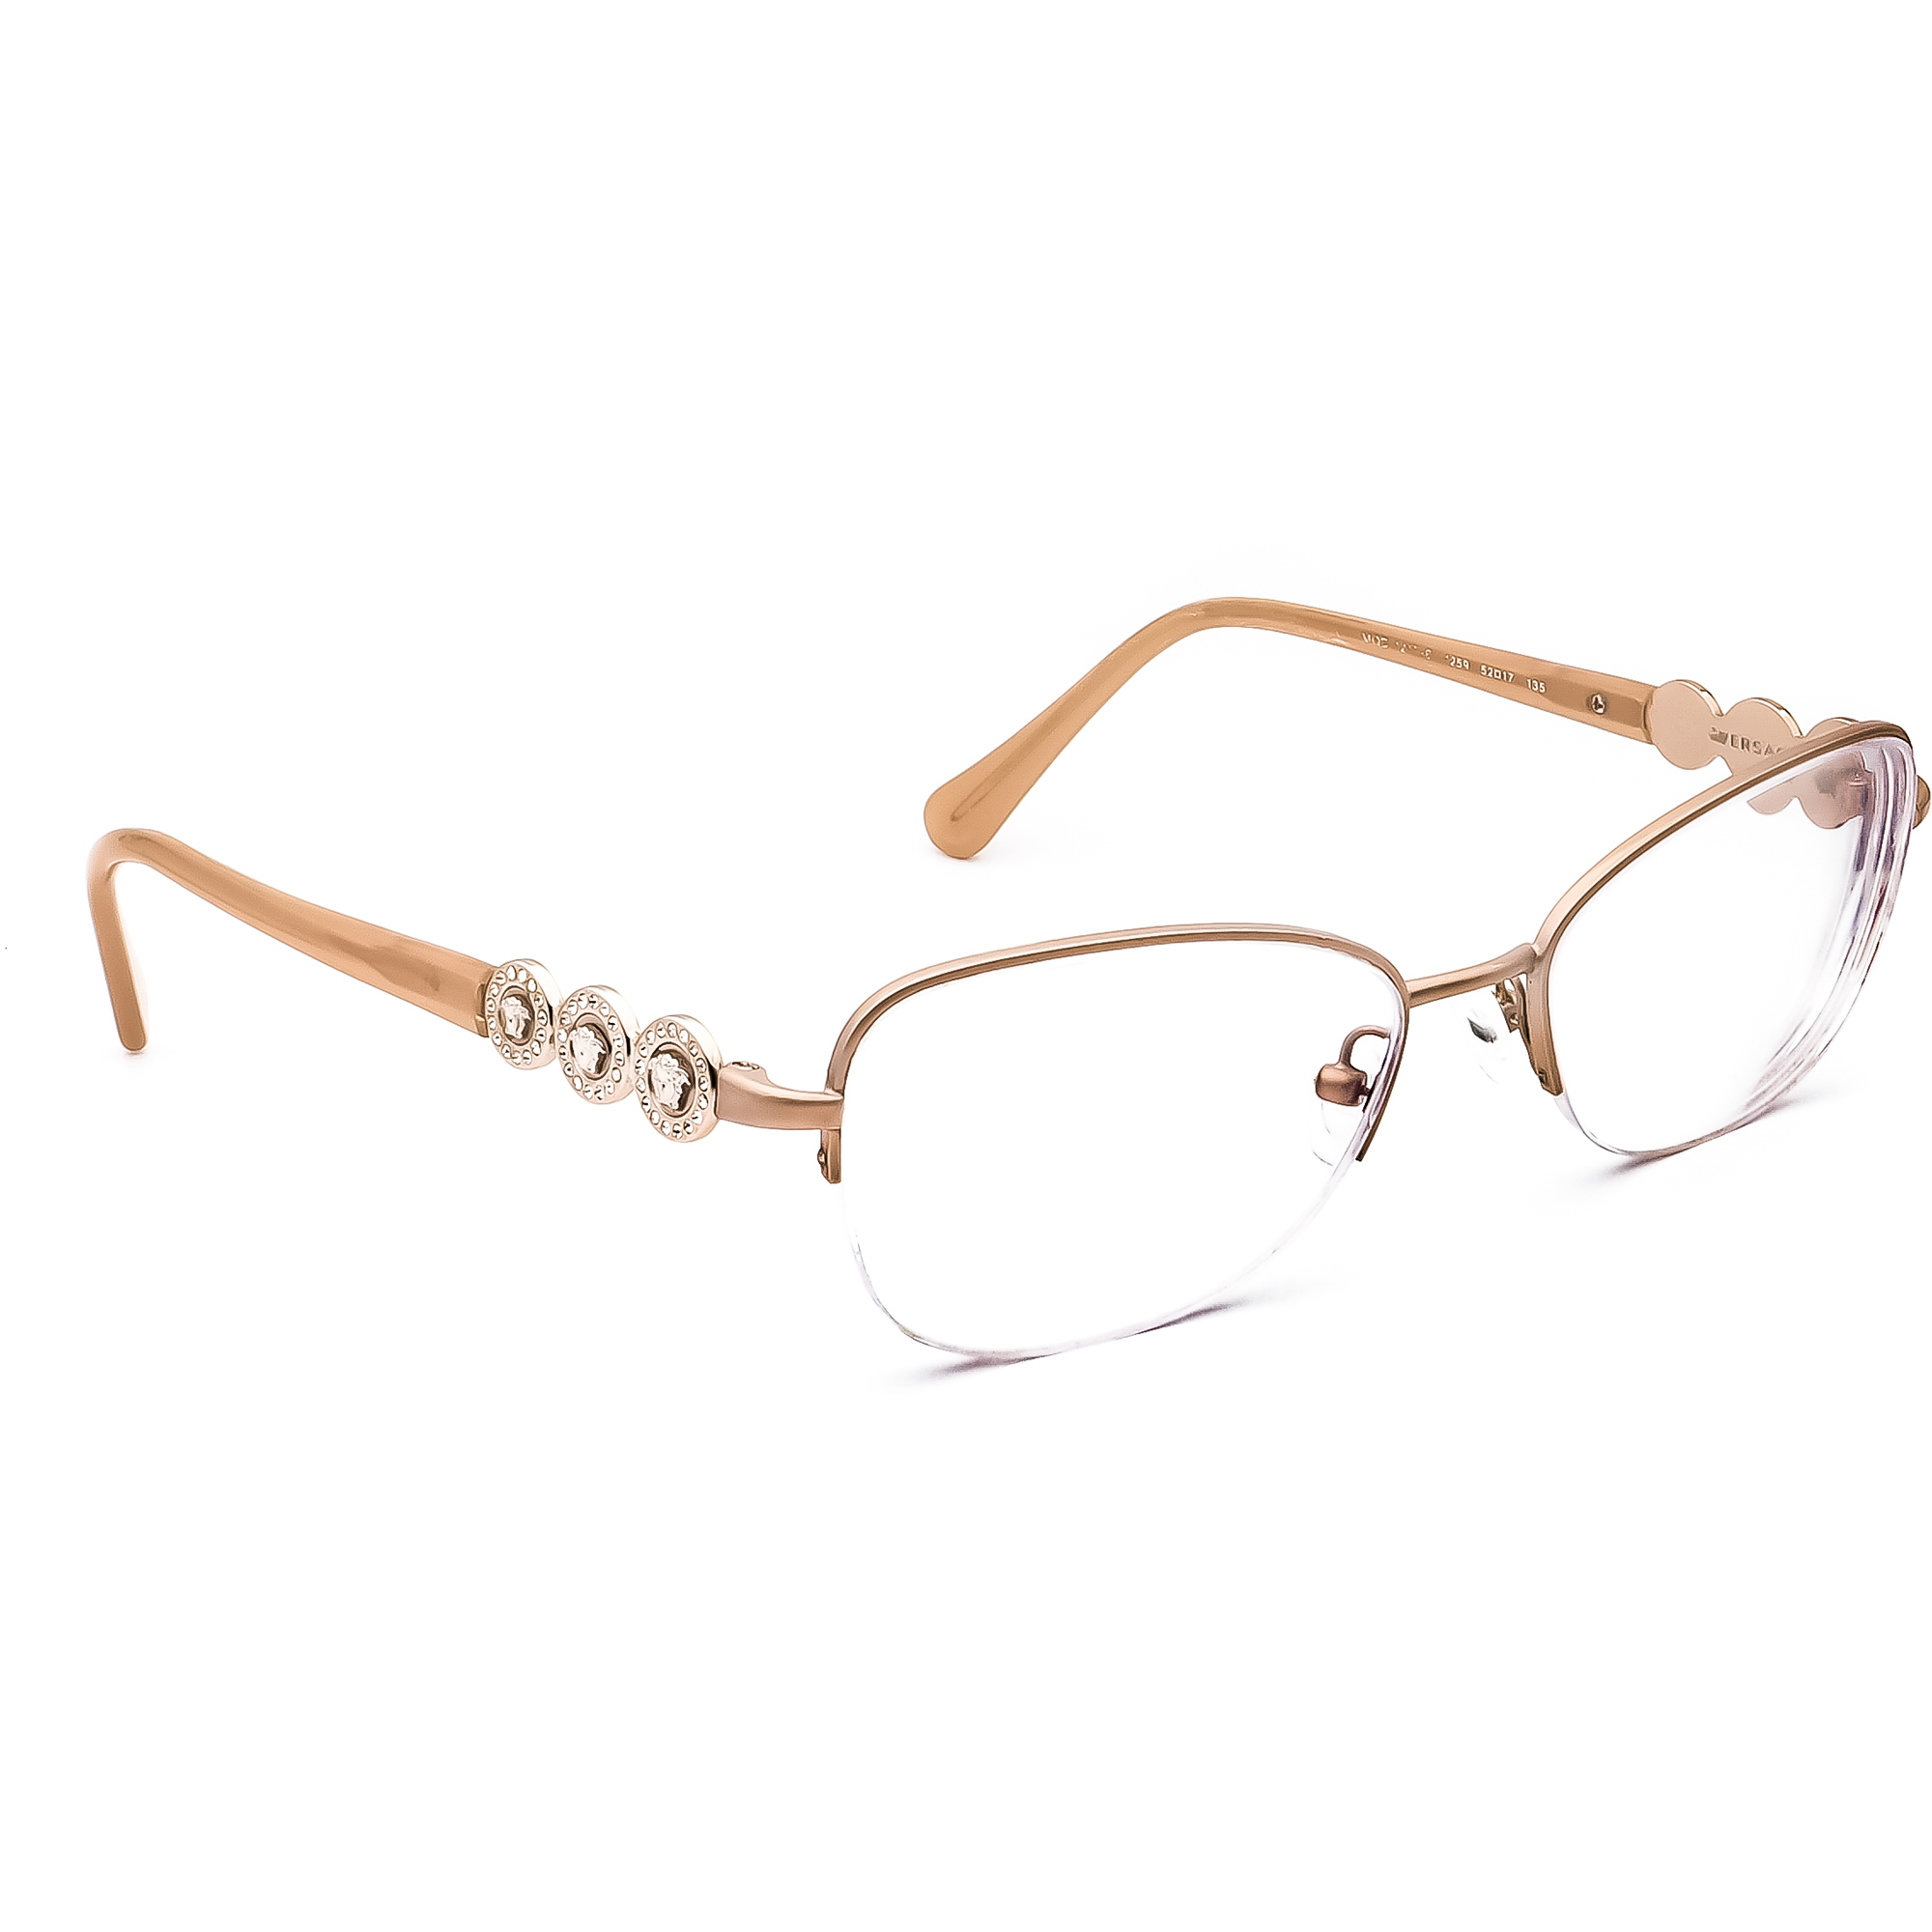 Versace Women's Eyeglasses MOD.1217-B 1259 Light Brown Half Rim Frame 52[]17 135